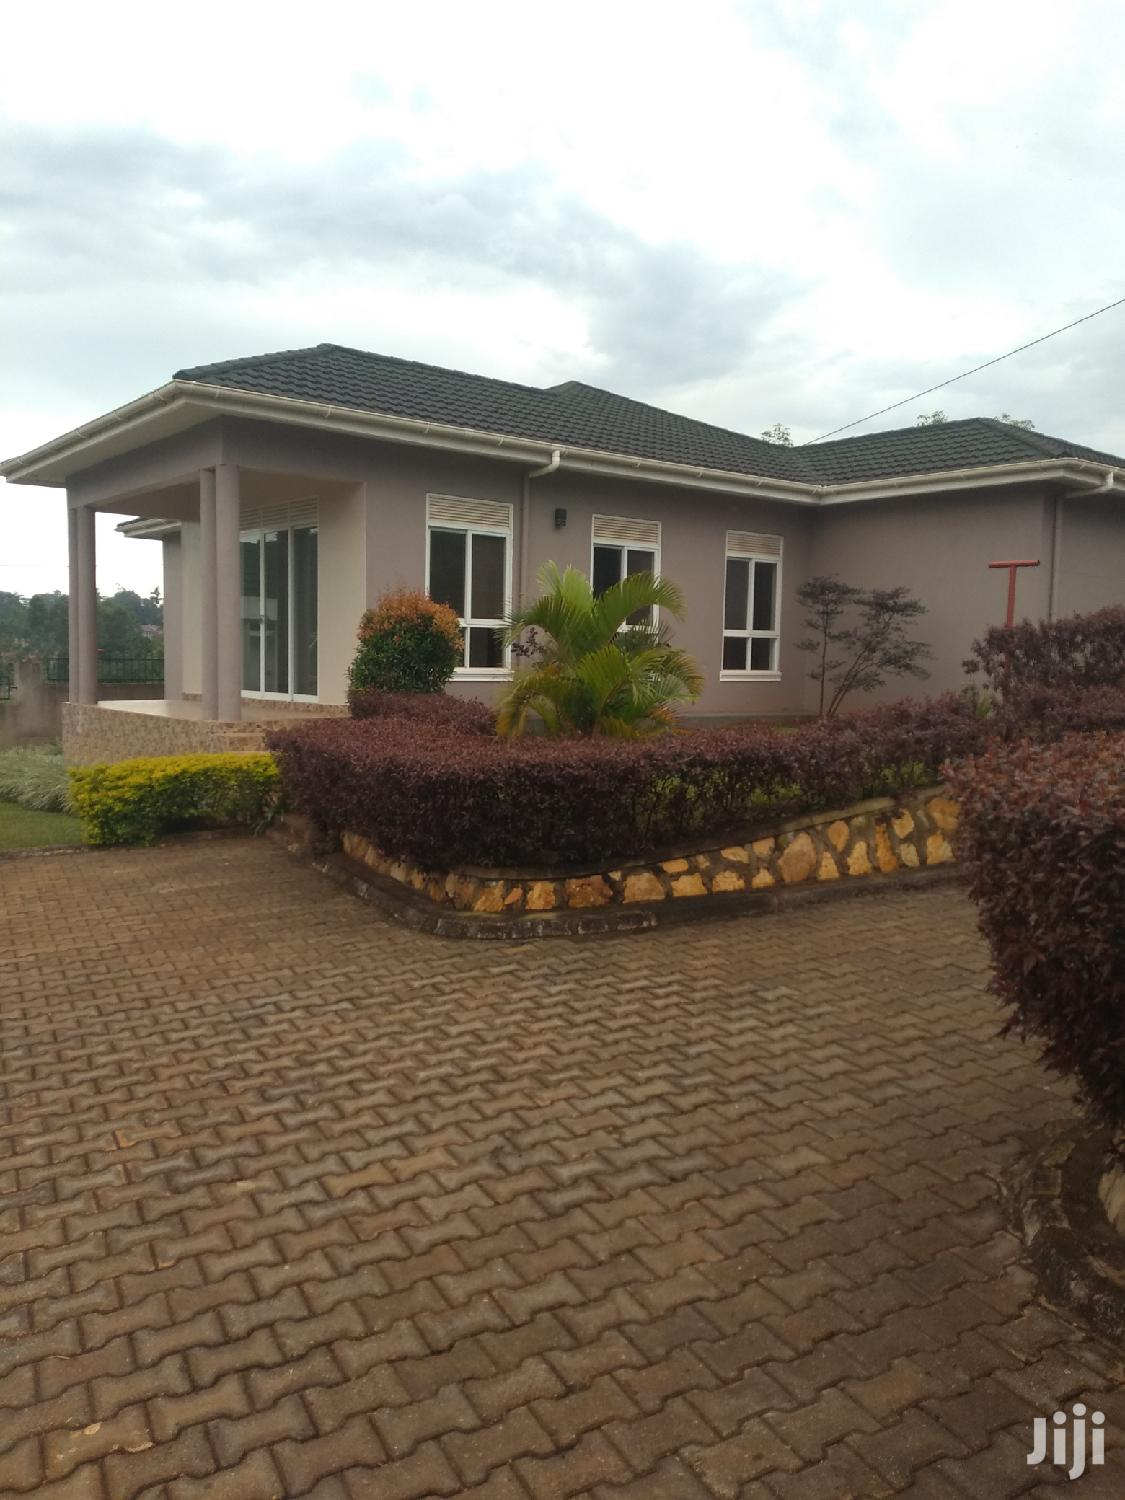 Brand New Four Bedroom House In Namugongo For Sale | Houses & Apartments For Sale for sale in Kampala, Central Region, Uganda